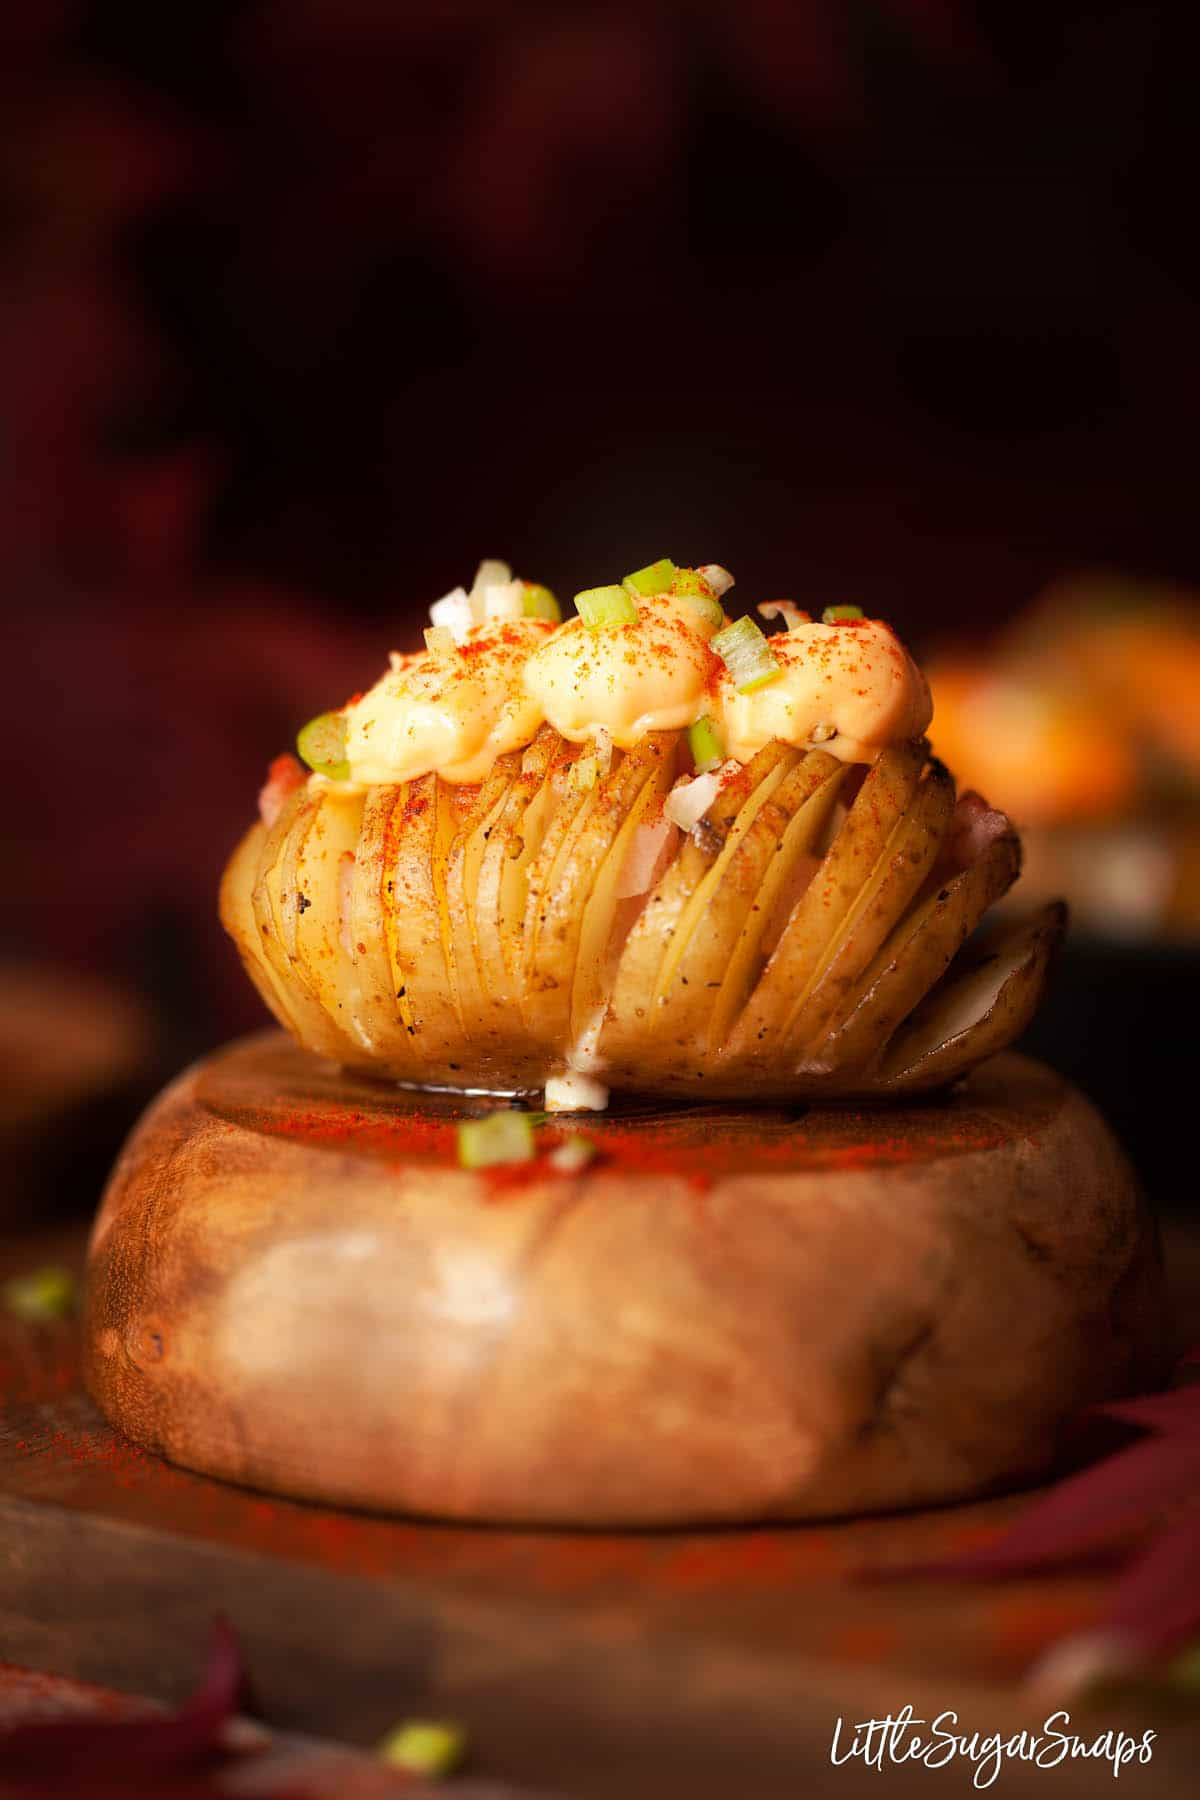 A cheesy hasselback potato filled with bacon sitting on an upturned wooden bowl.